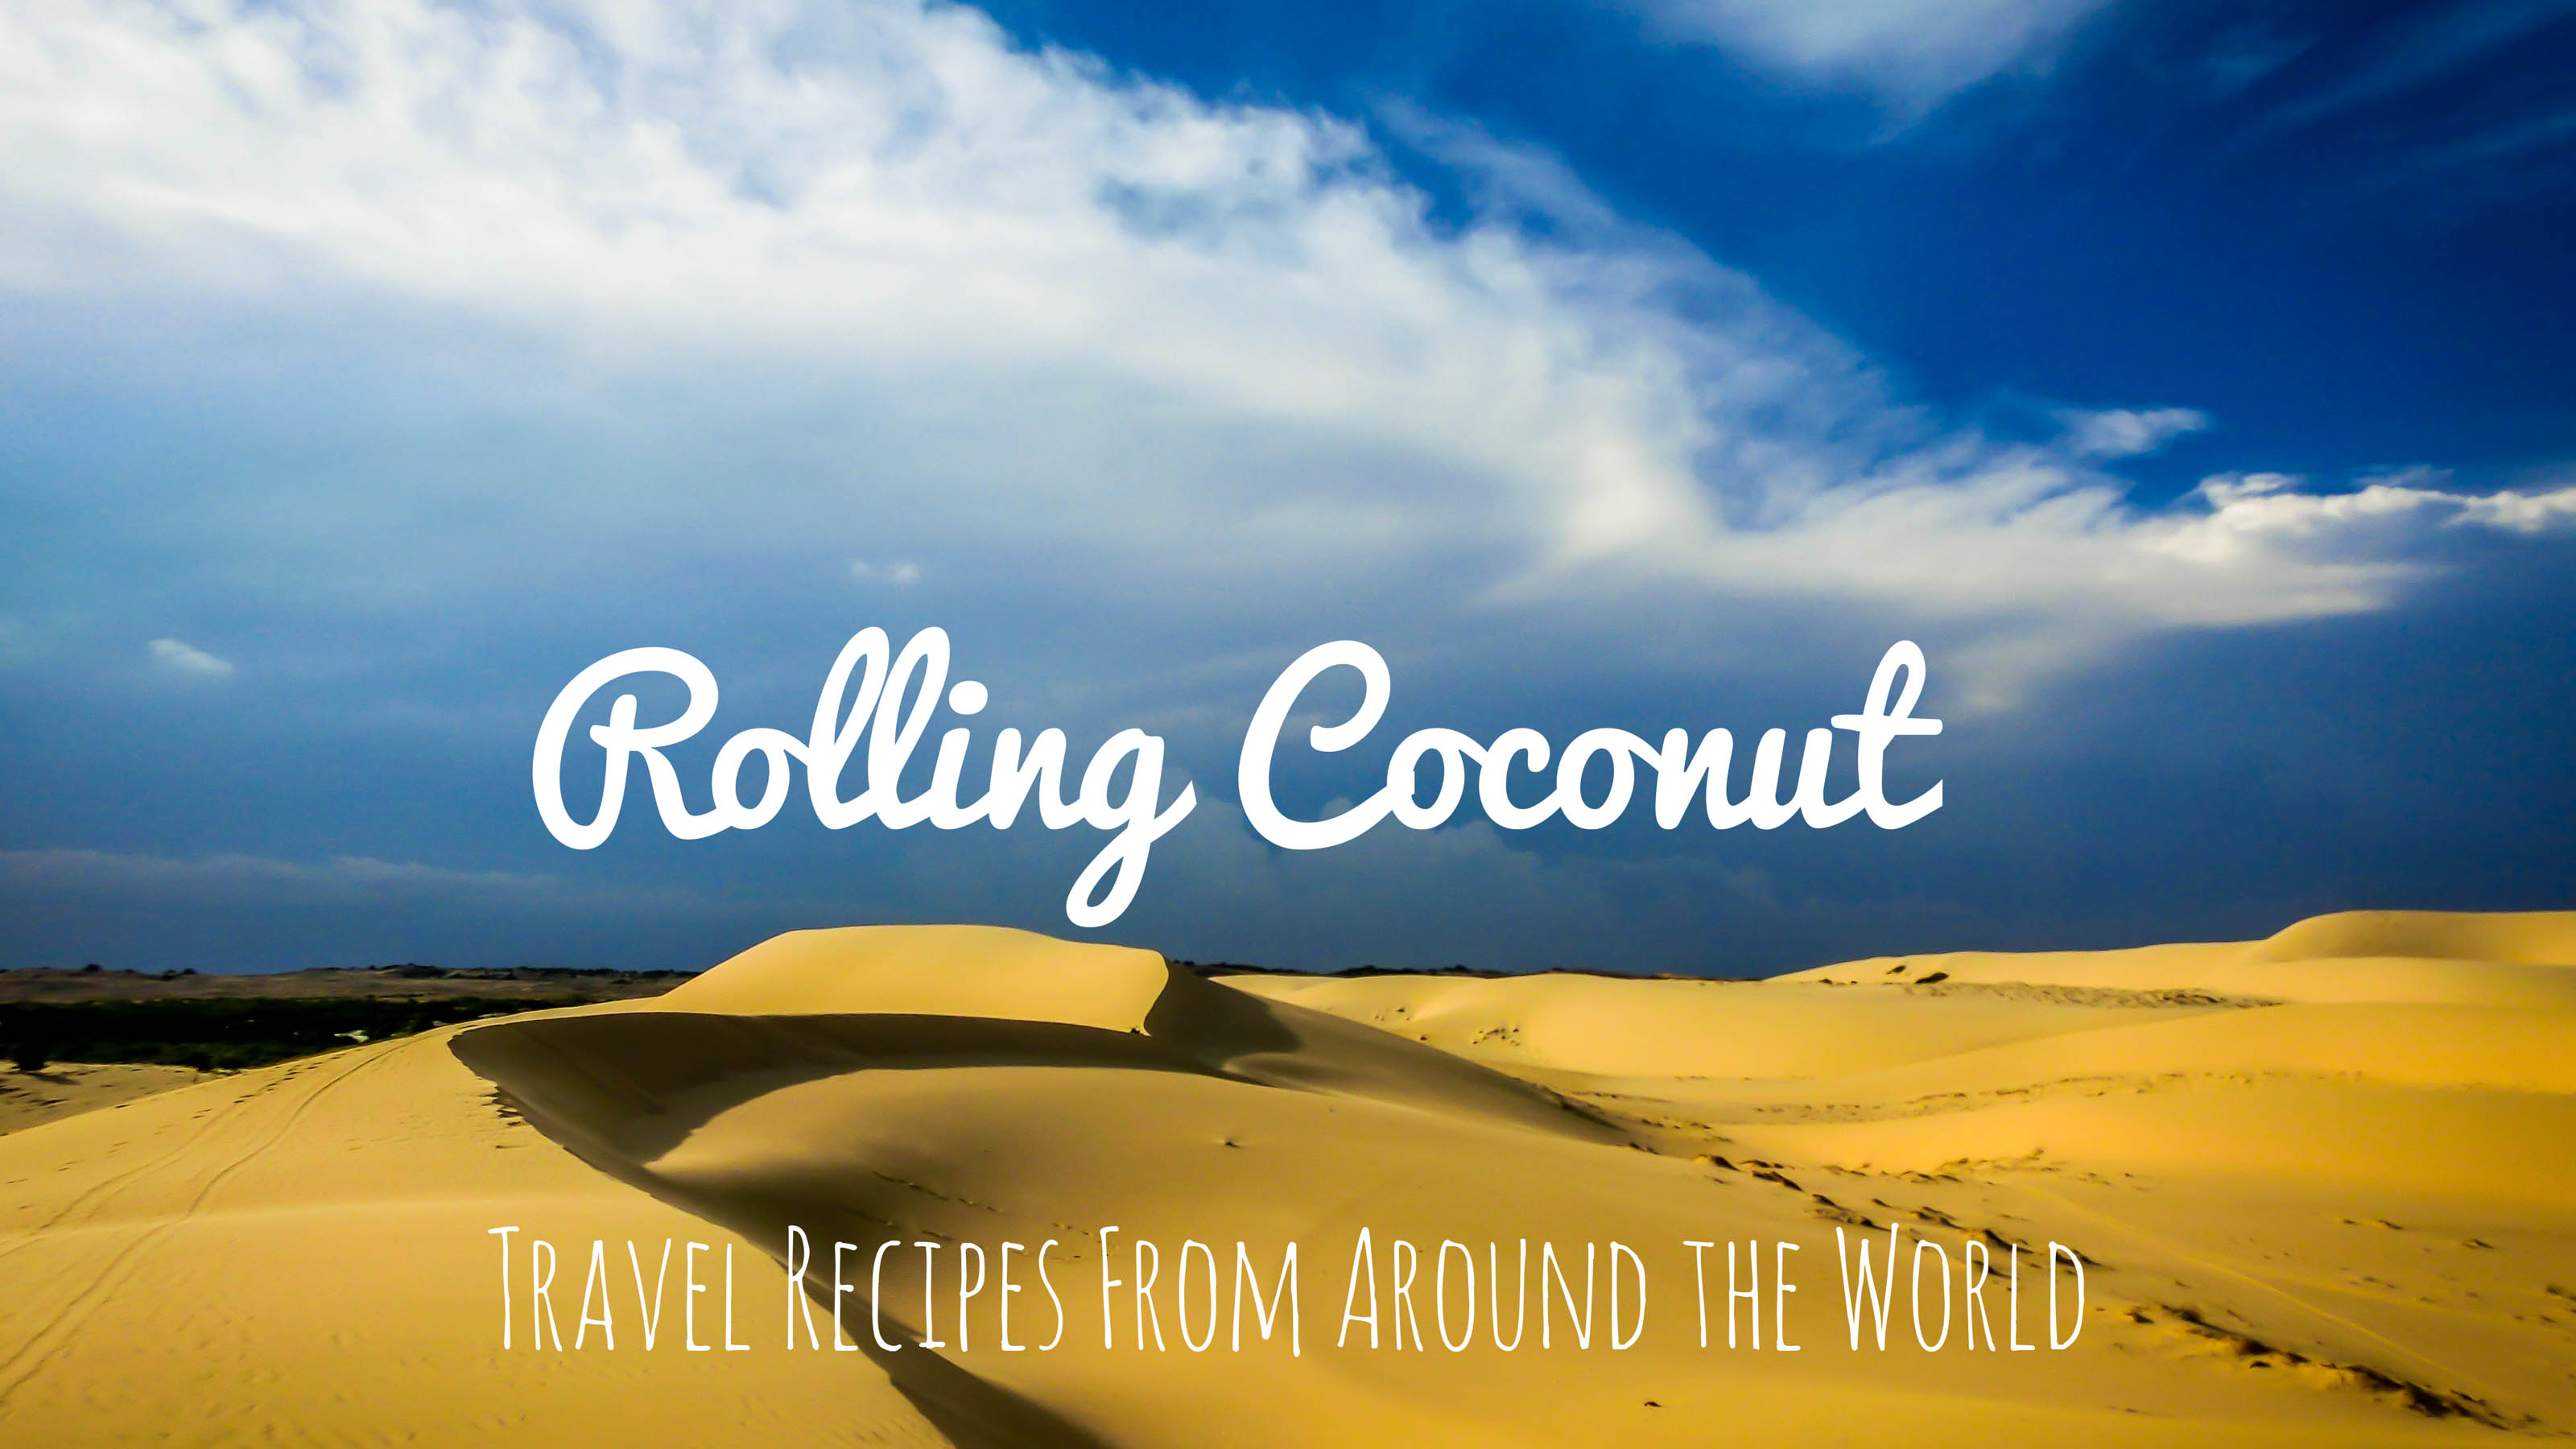 Ooaworld Travel Rolling Coconut Photo photo Ooaworld